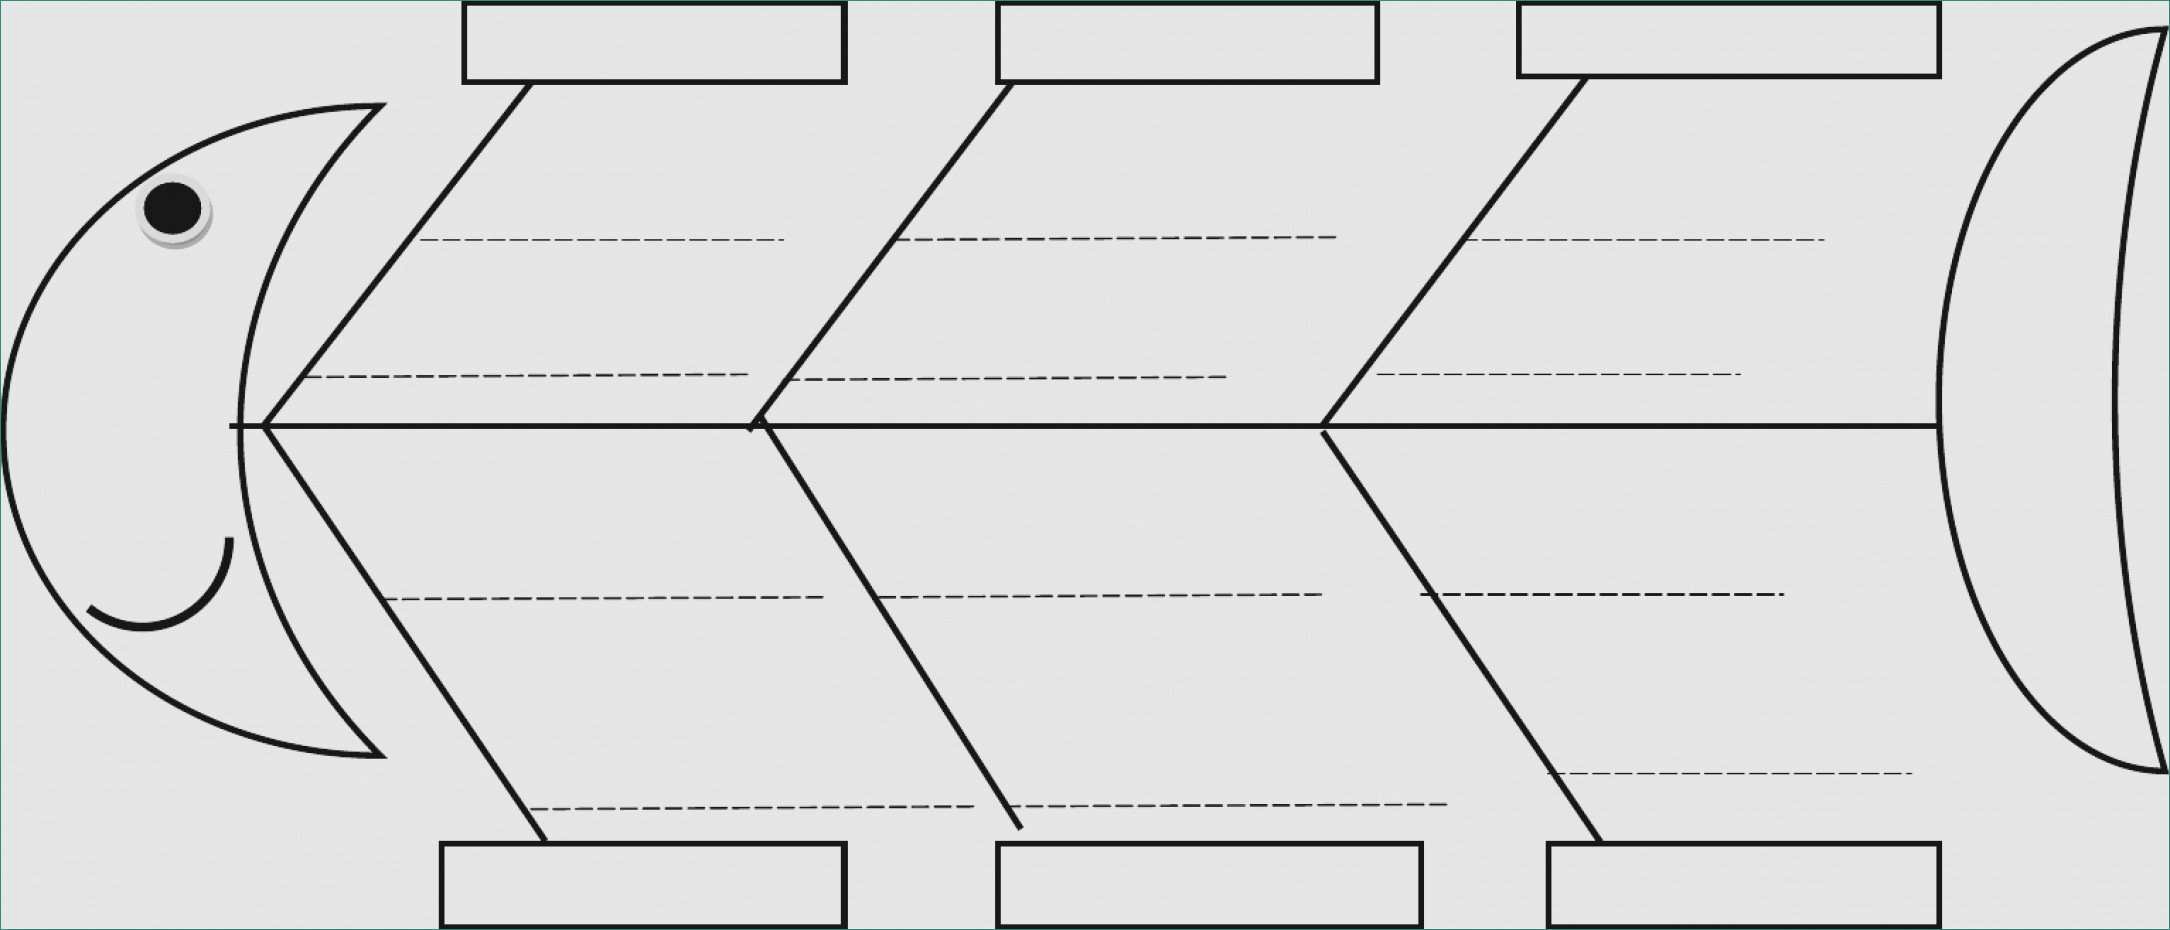 Blank Fishbone Diagram Template Inspirational Blank Cause and Effect Diagram